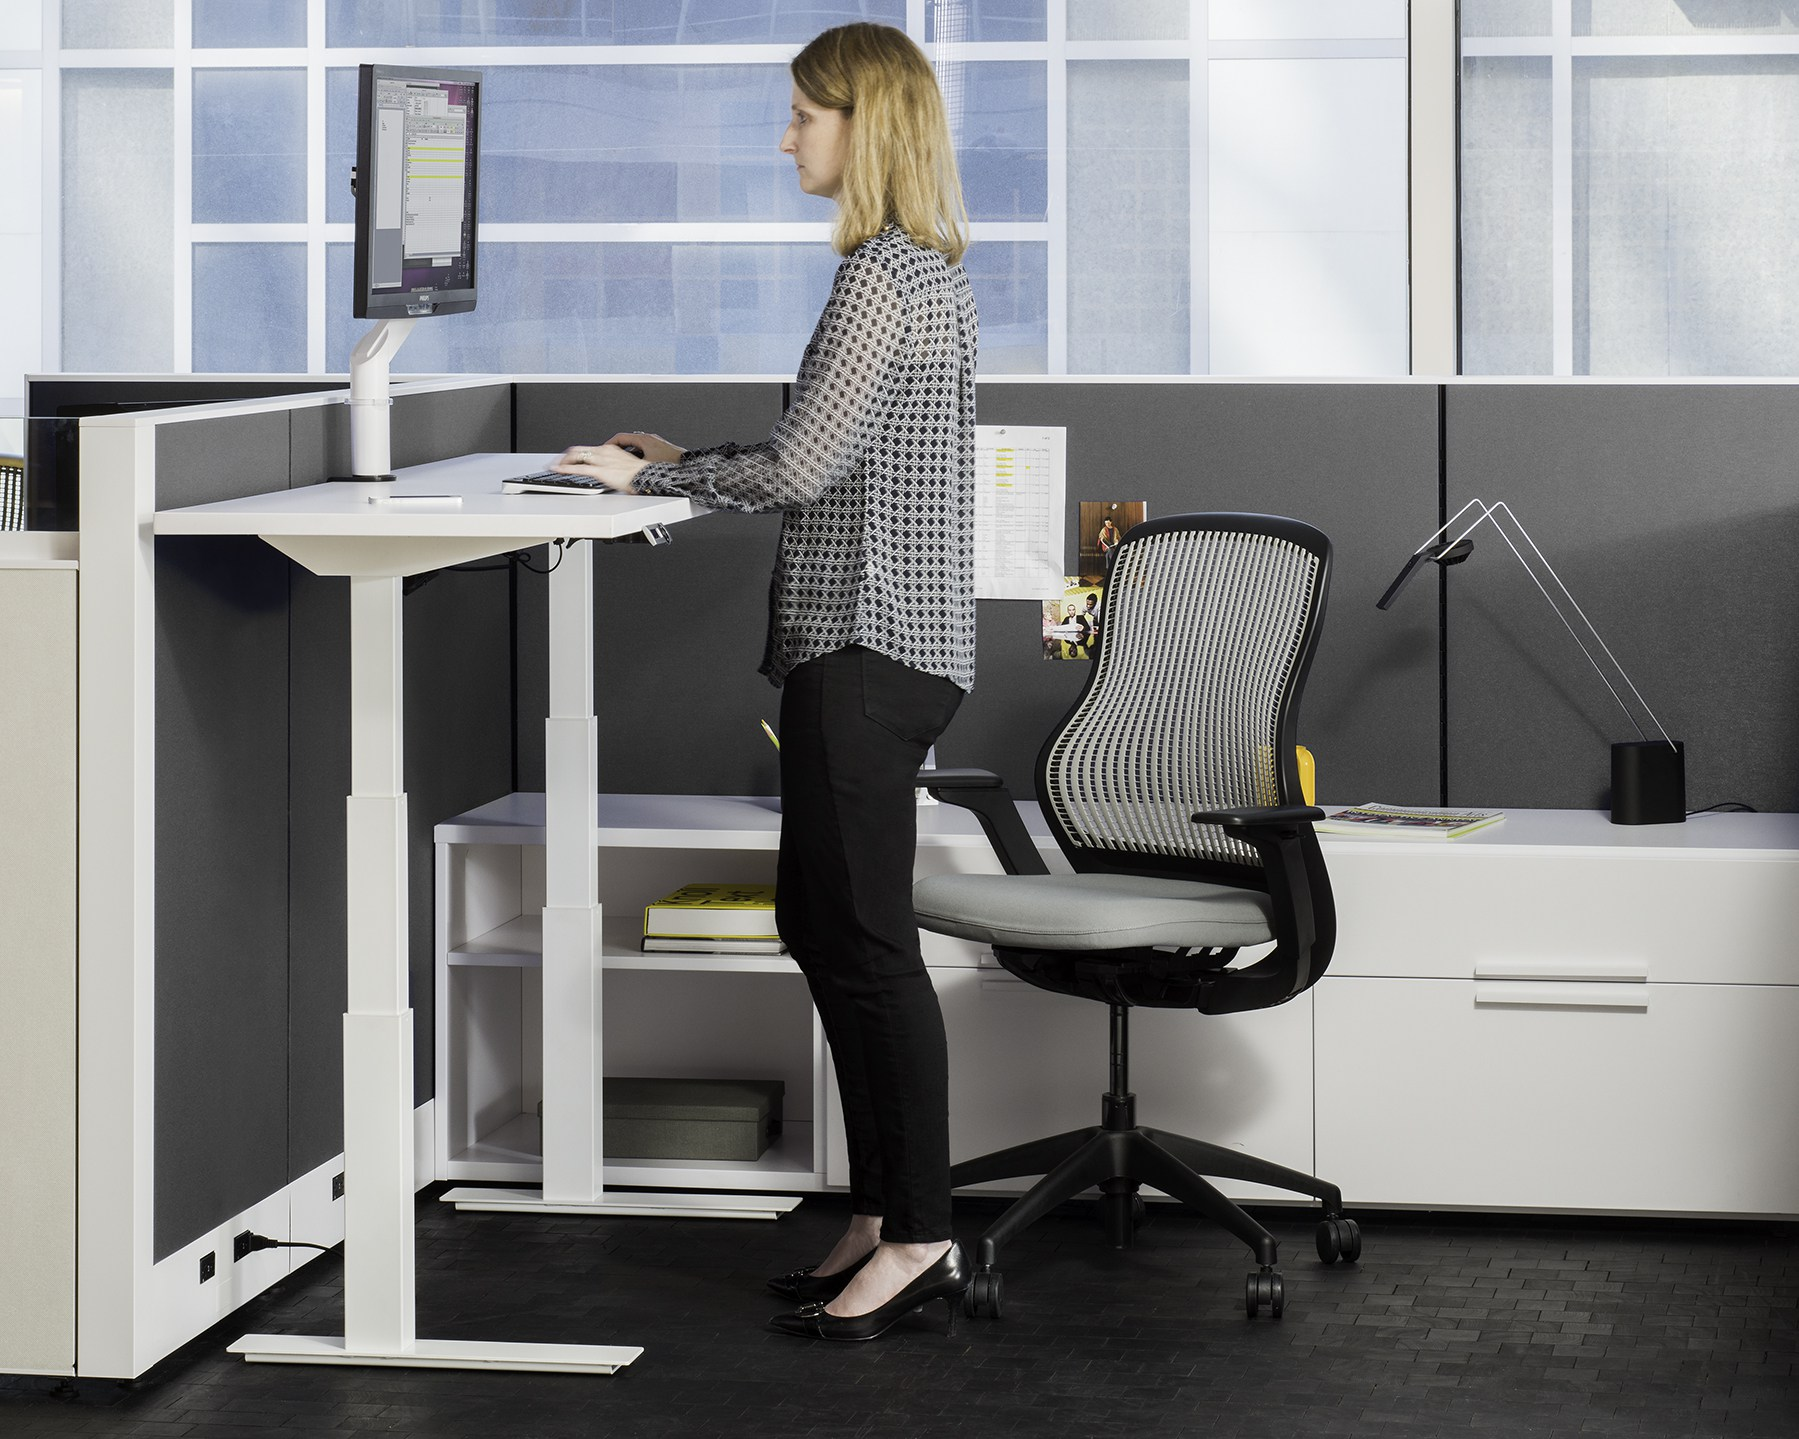 Image of: ergonomic computer chair design ideas